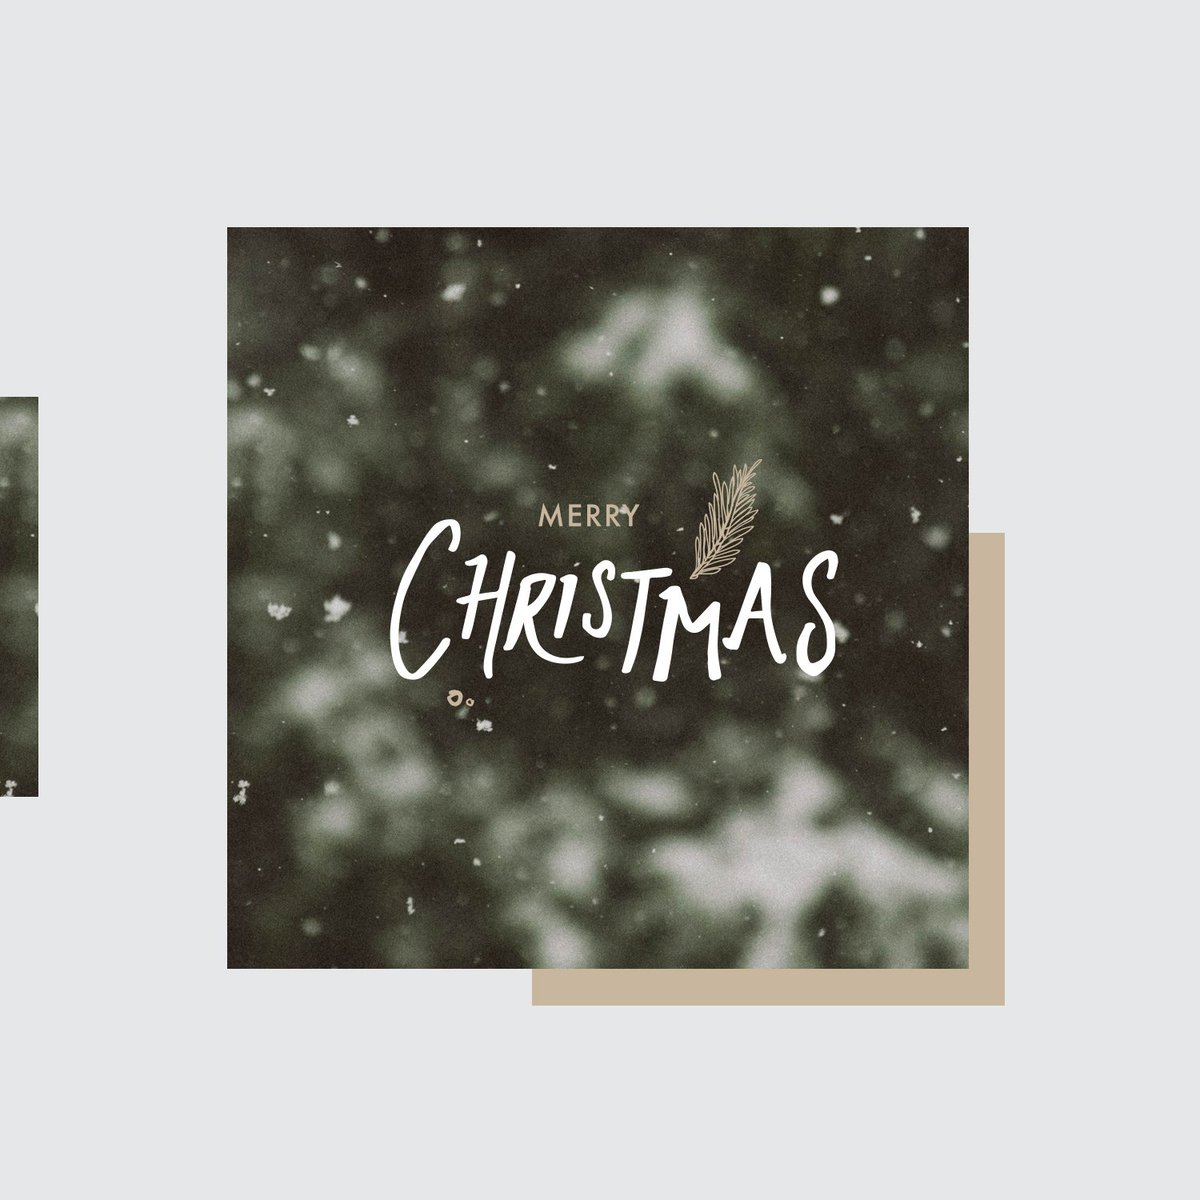 ccv church on twitter merry christmas there is no service today see you on sunday - Ccv Christmas Services